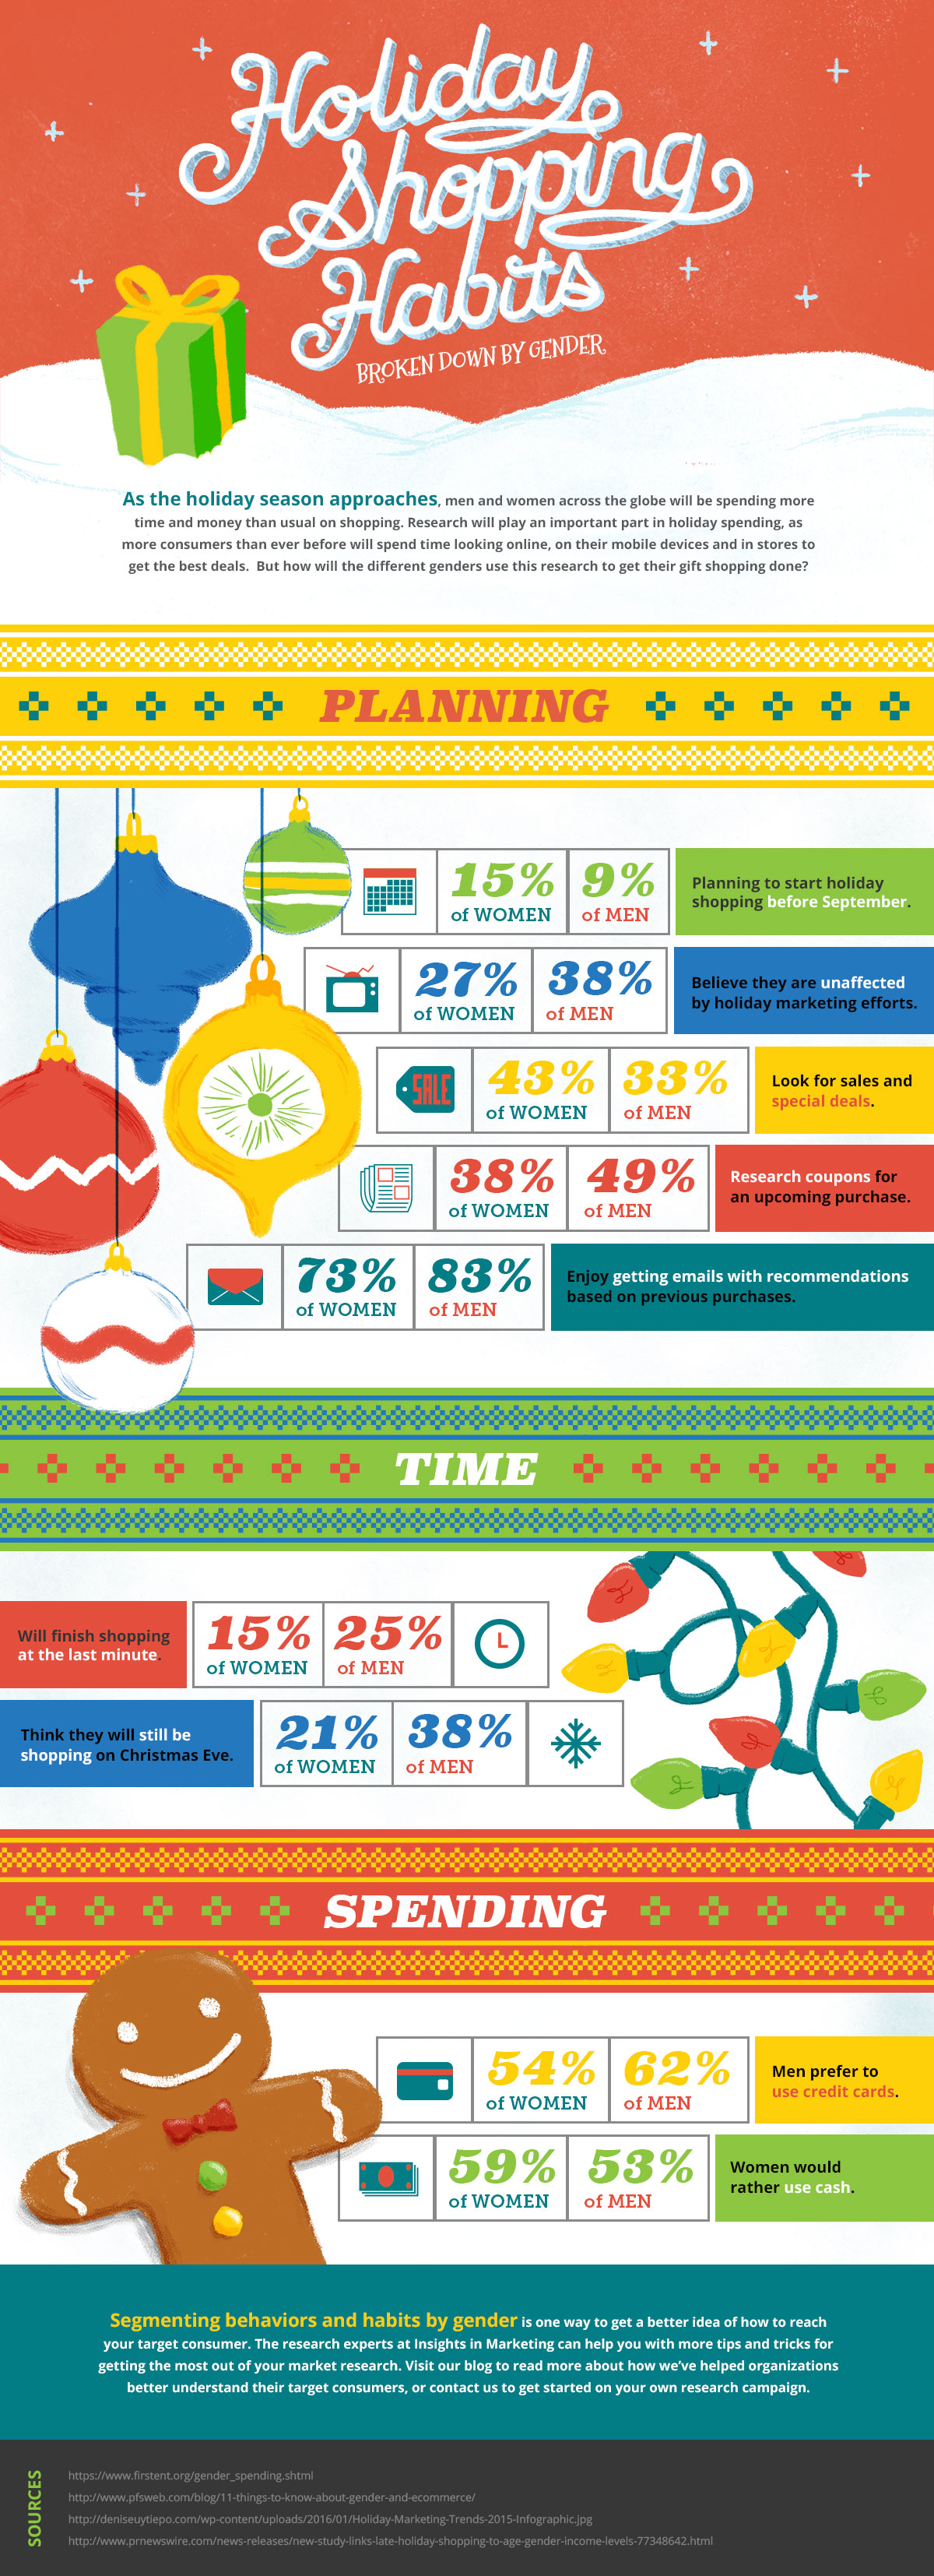 Holiday Shopping Habits Broken Down By Gender